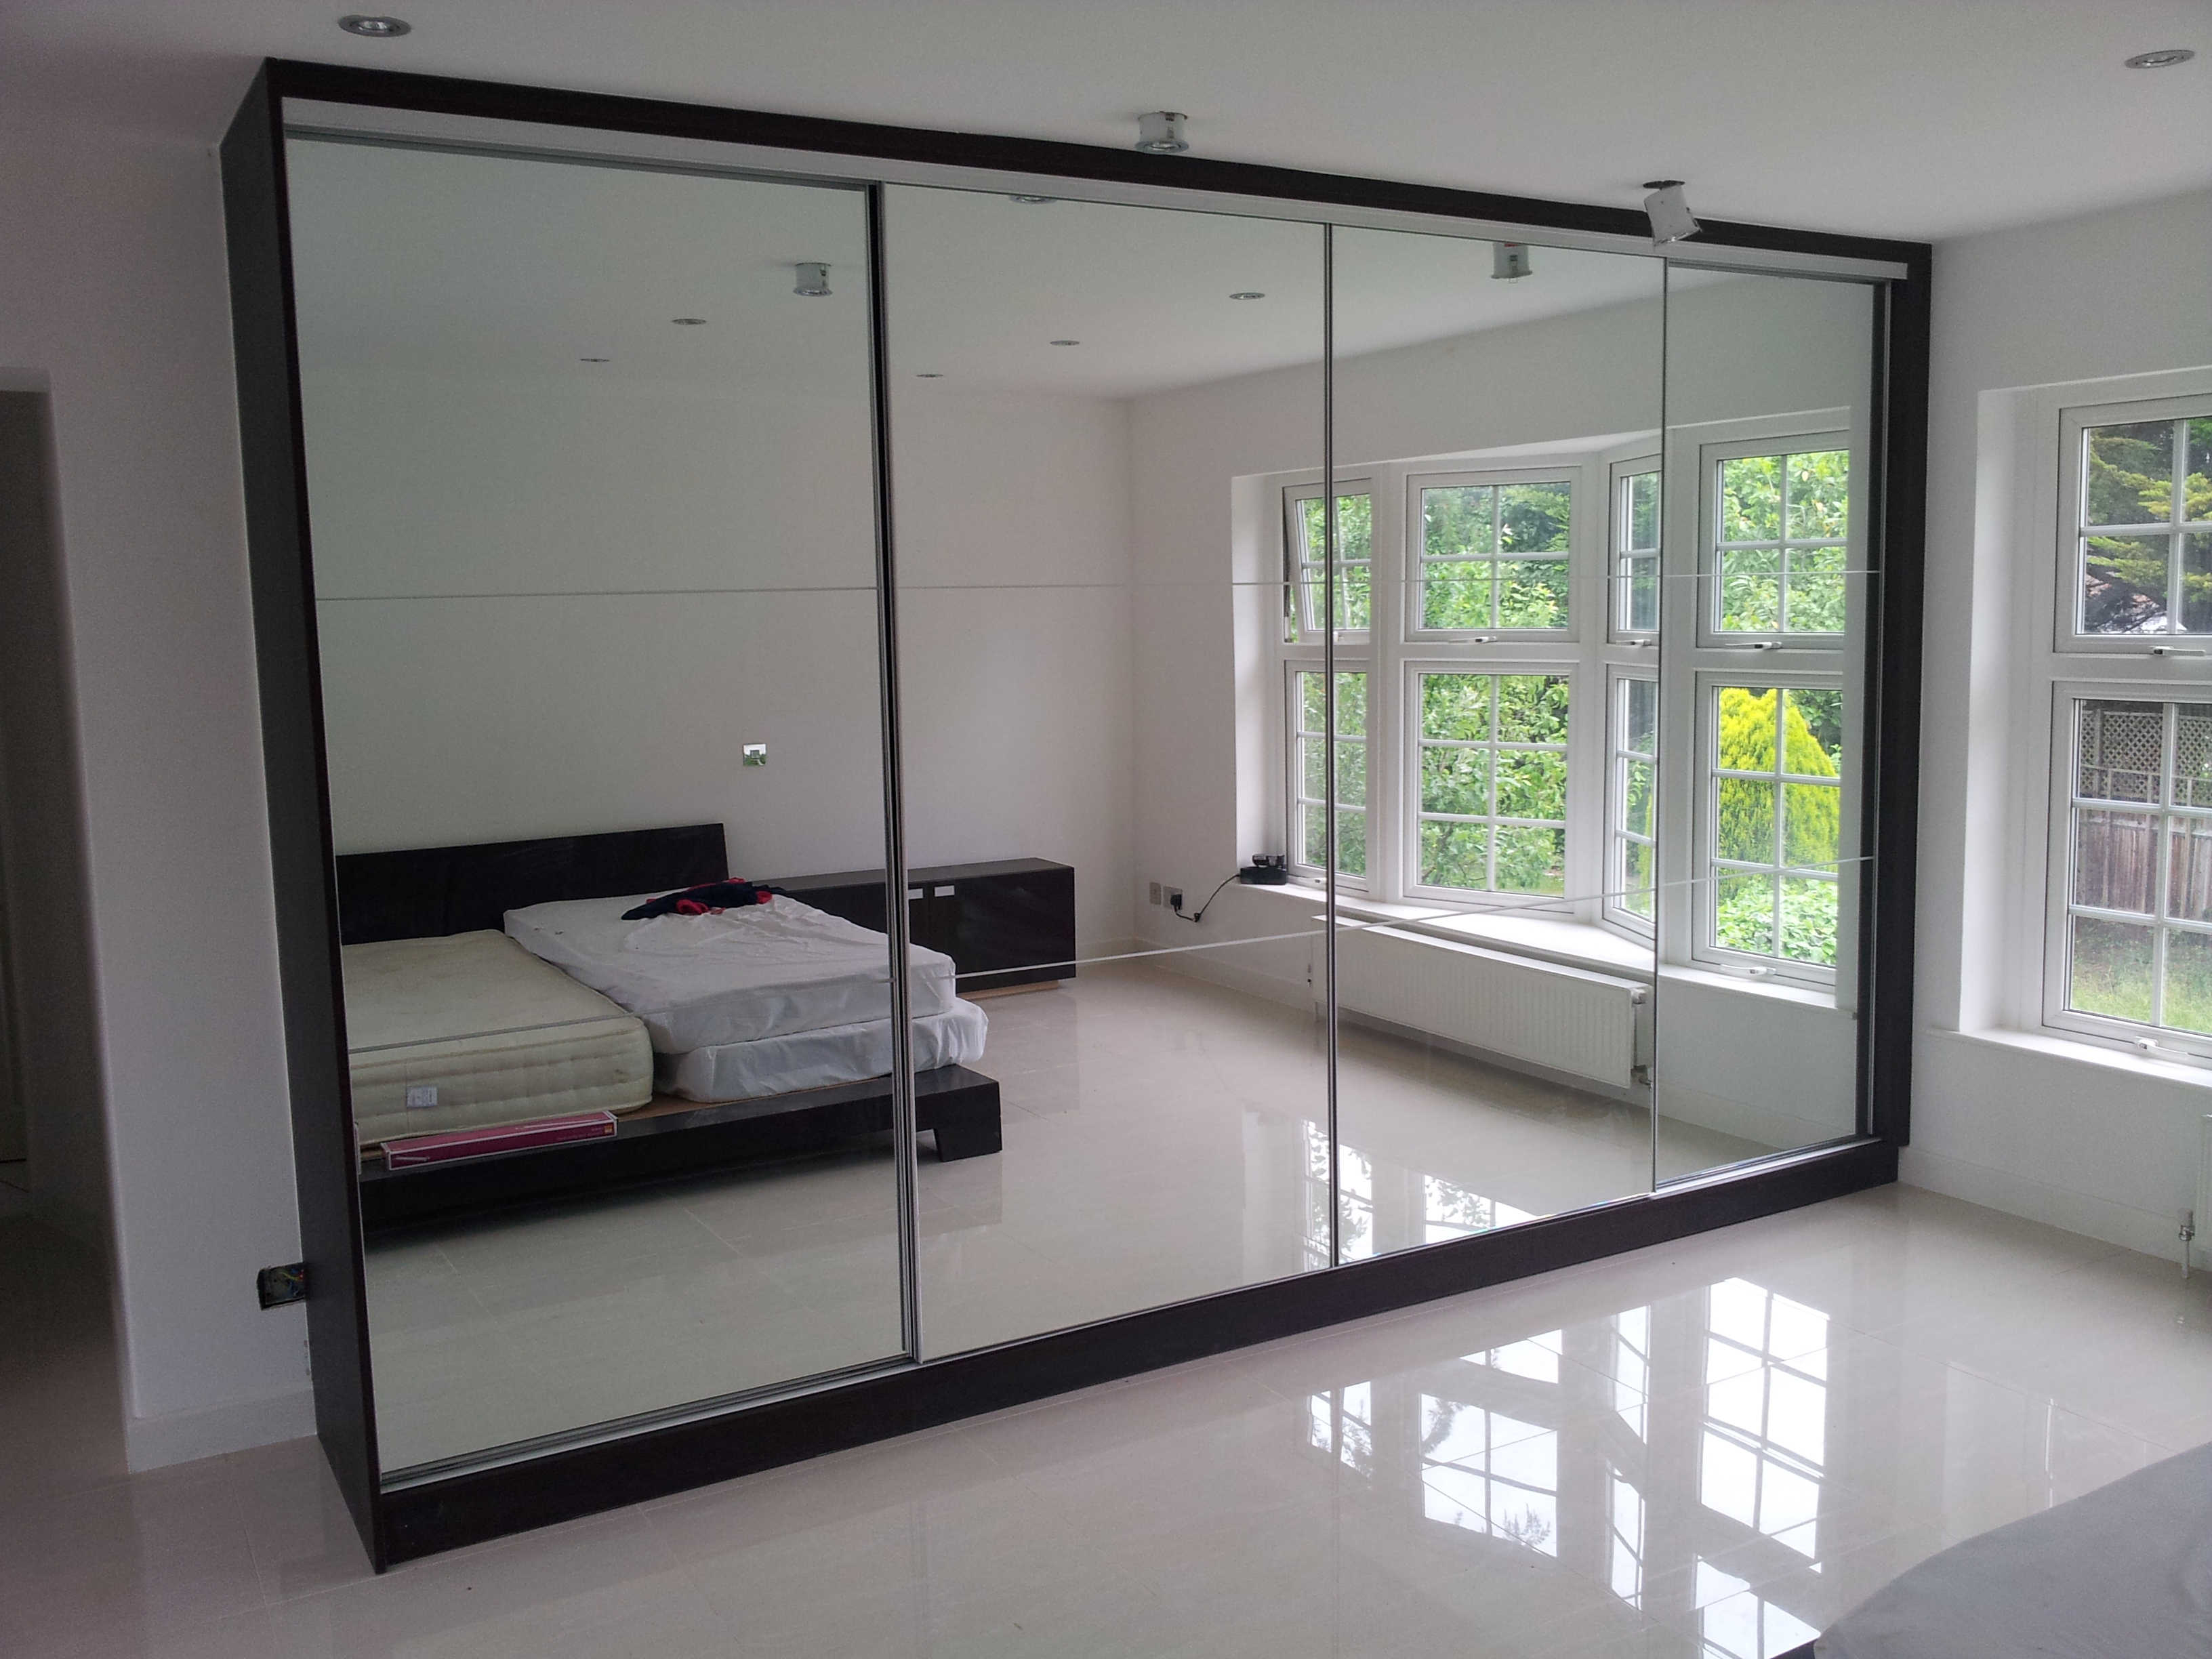 Sliding door wardrobe sliding wardrobes london for Sliding mirror doors